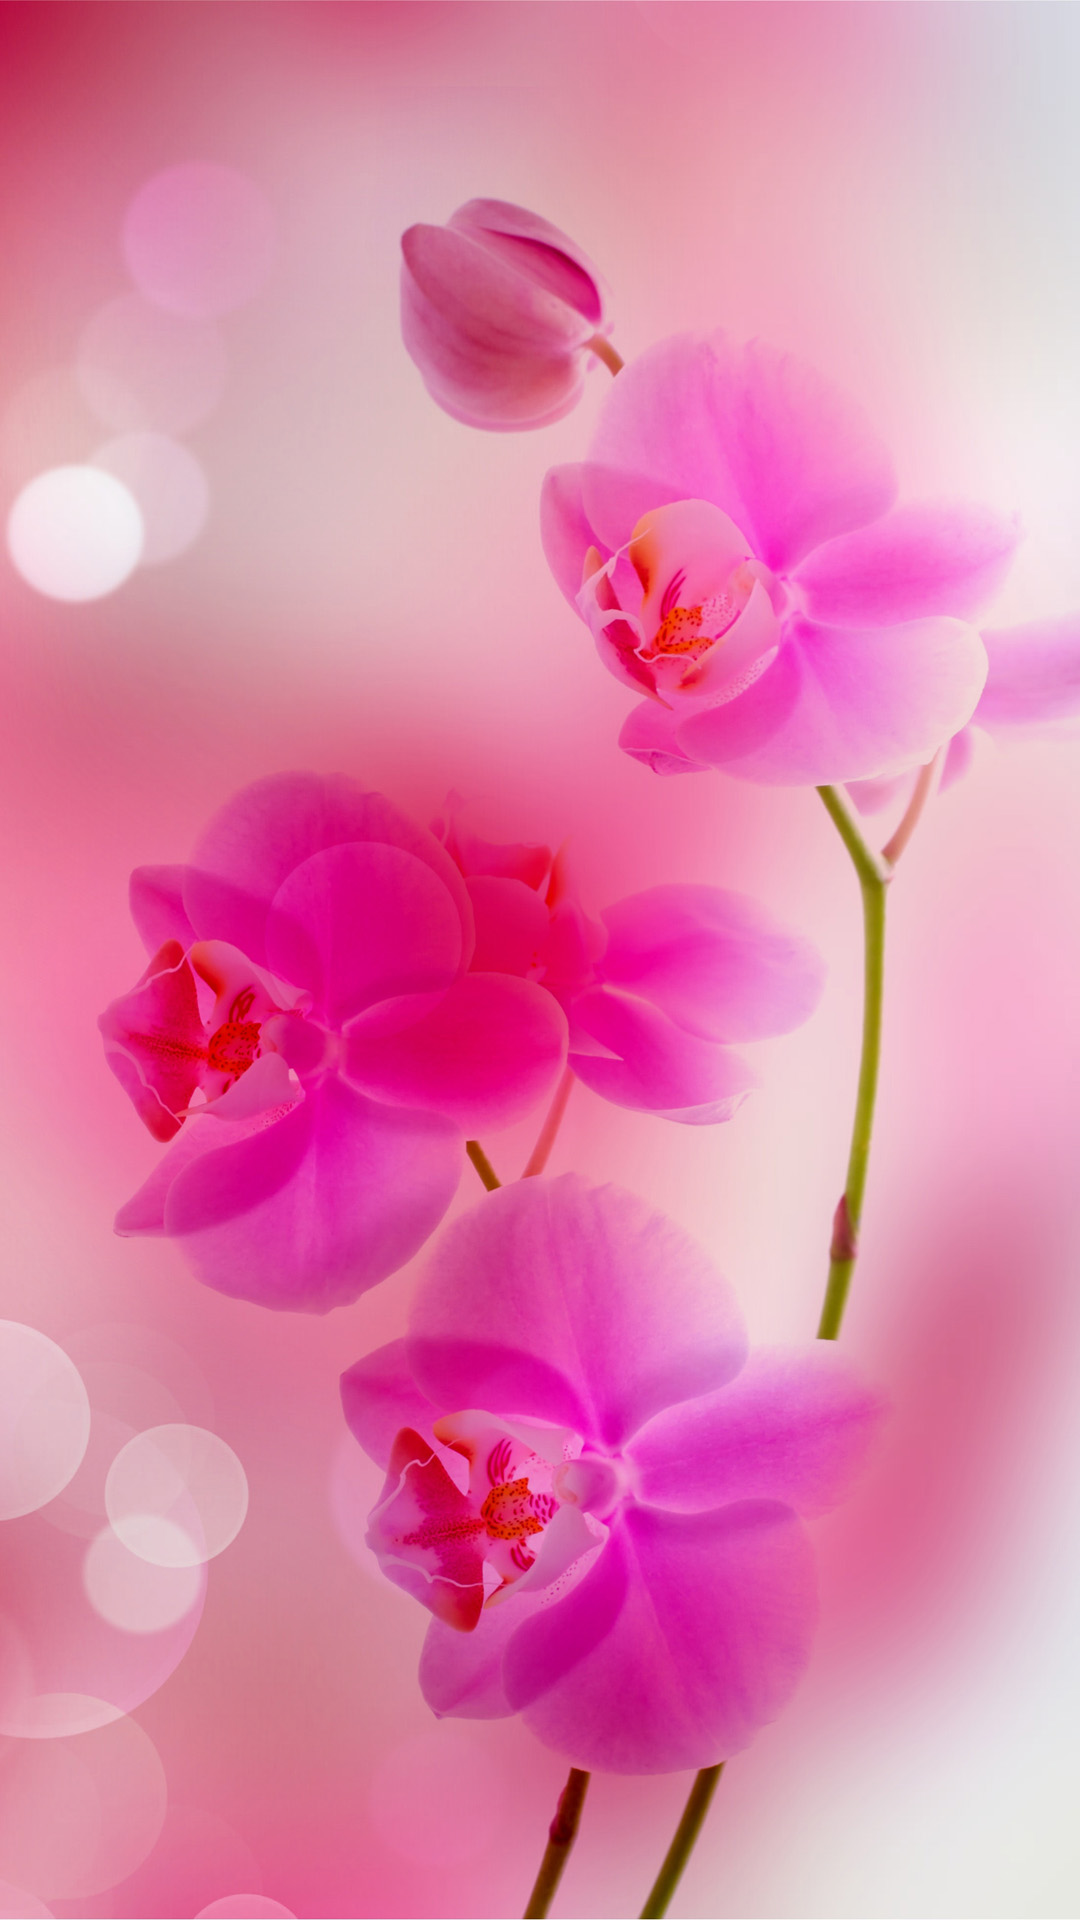 Pink Flowers iphone 6 plus wallpaper iPhone 6 Plus Wallpapers HD 1080x1920